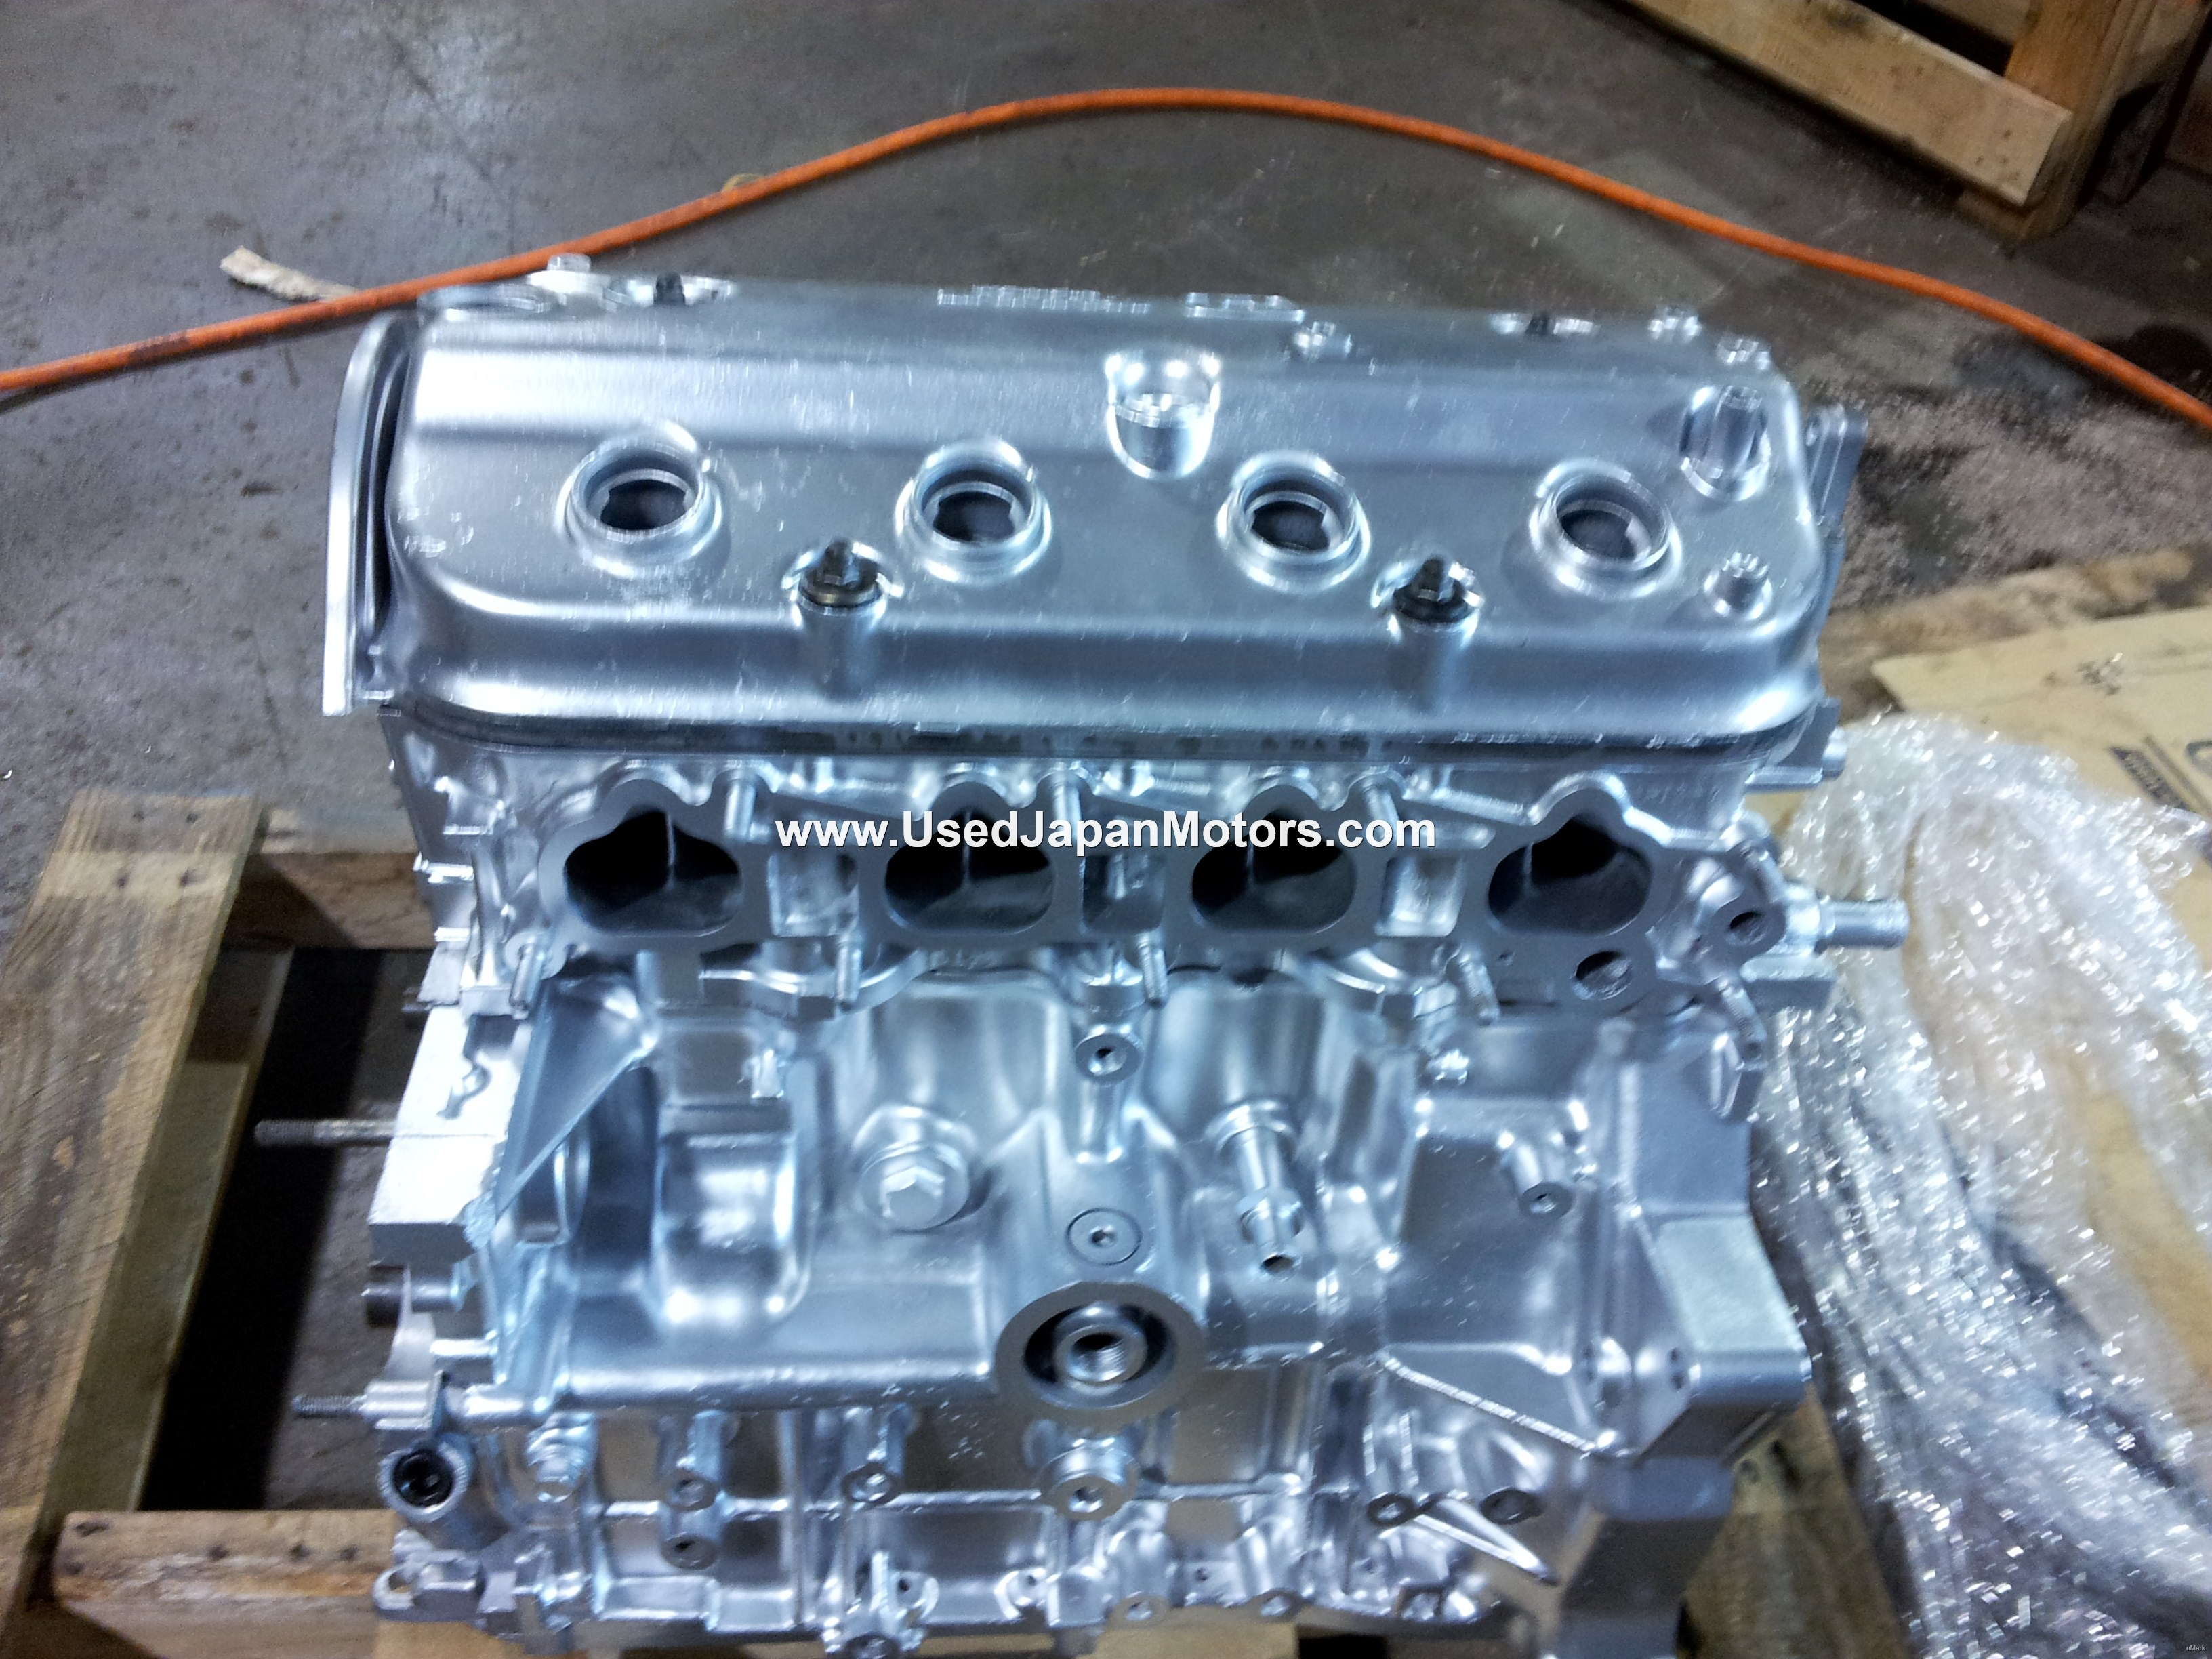 Low Mileage Honda Accord Engines From Japan We Also Rebuild